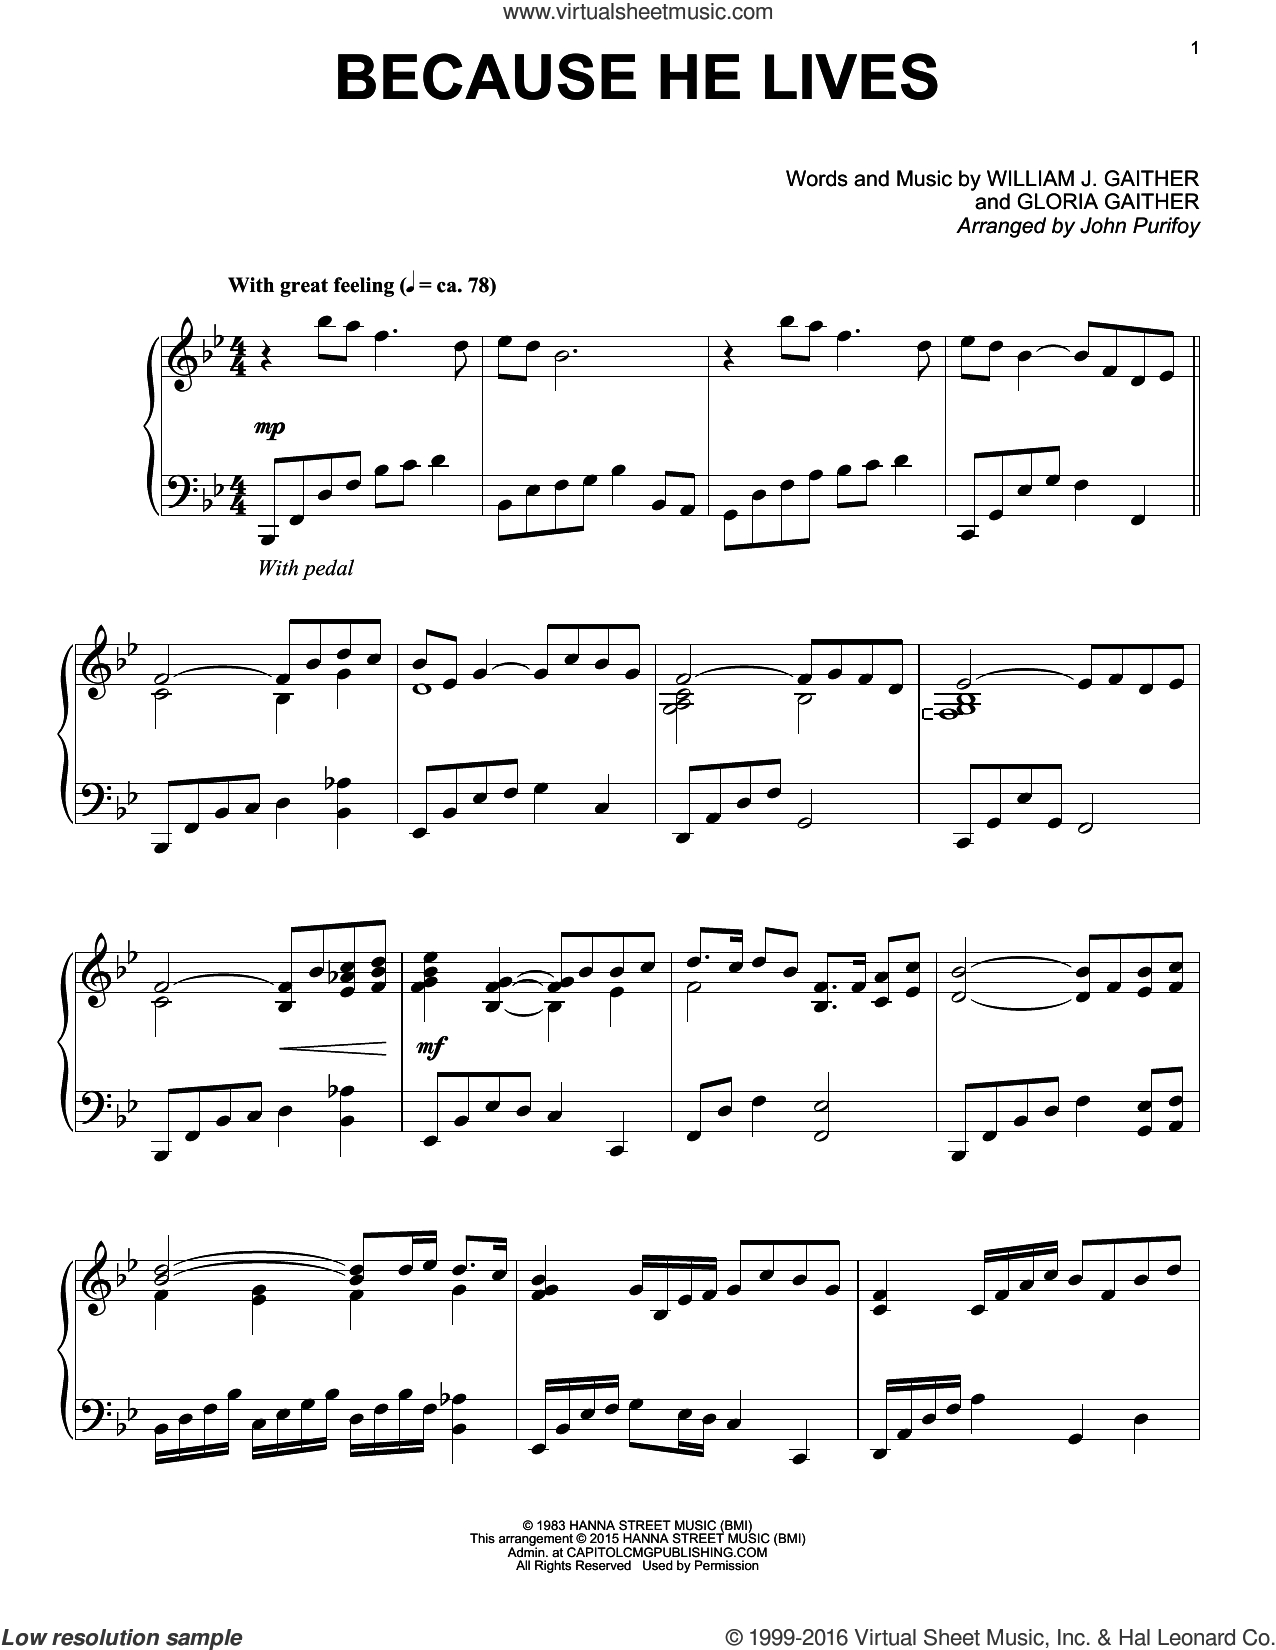 Gloria Gaither - Because He Lives Sheet Music For Piano Solo V3 - Free Printable Gospel Sheet Music For Piano